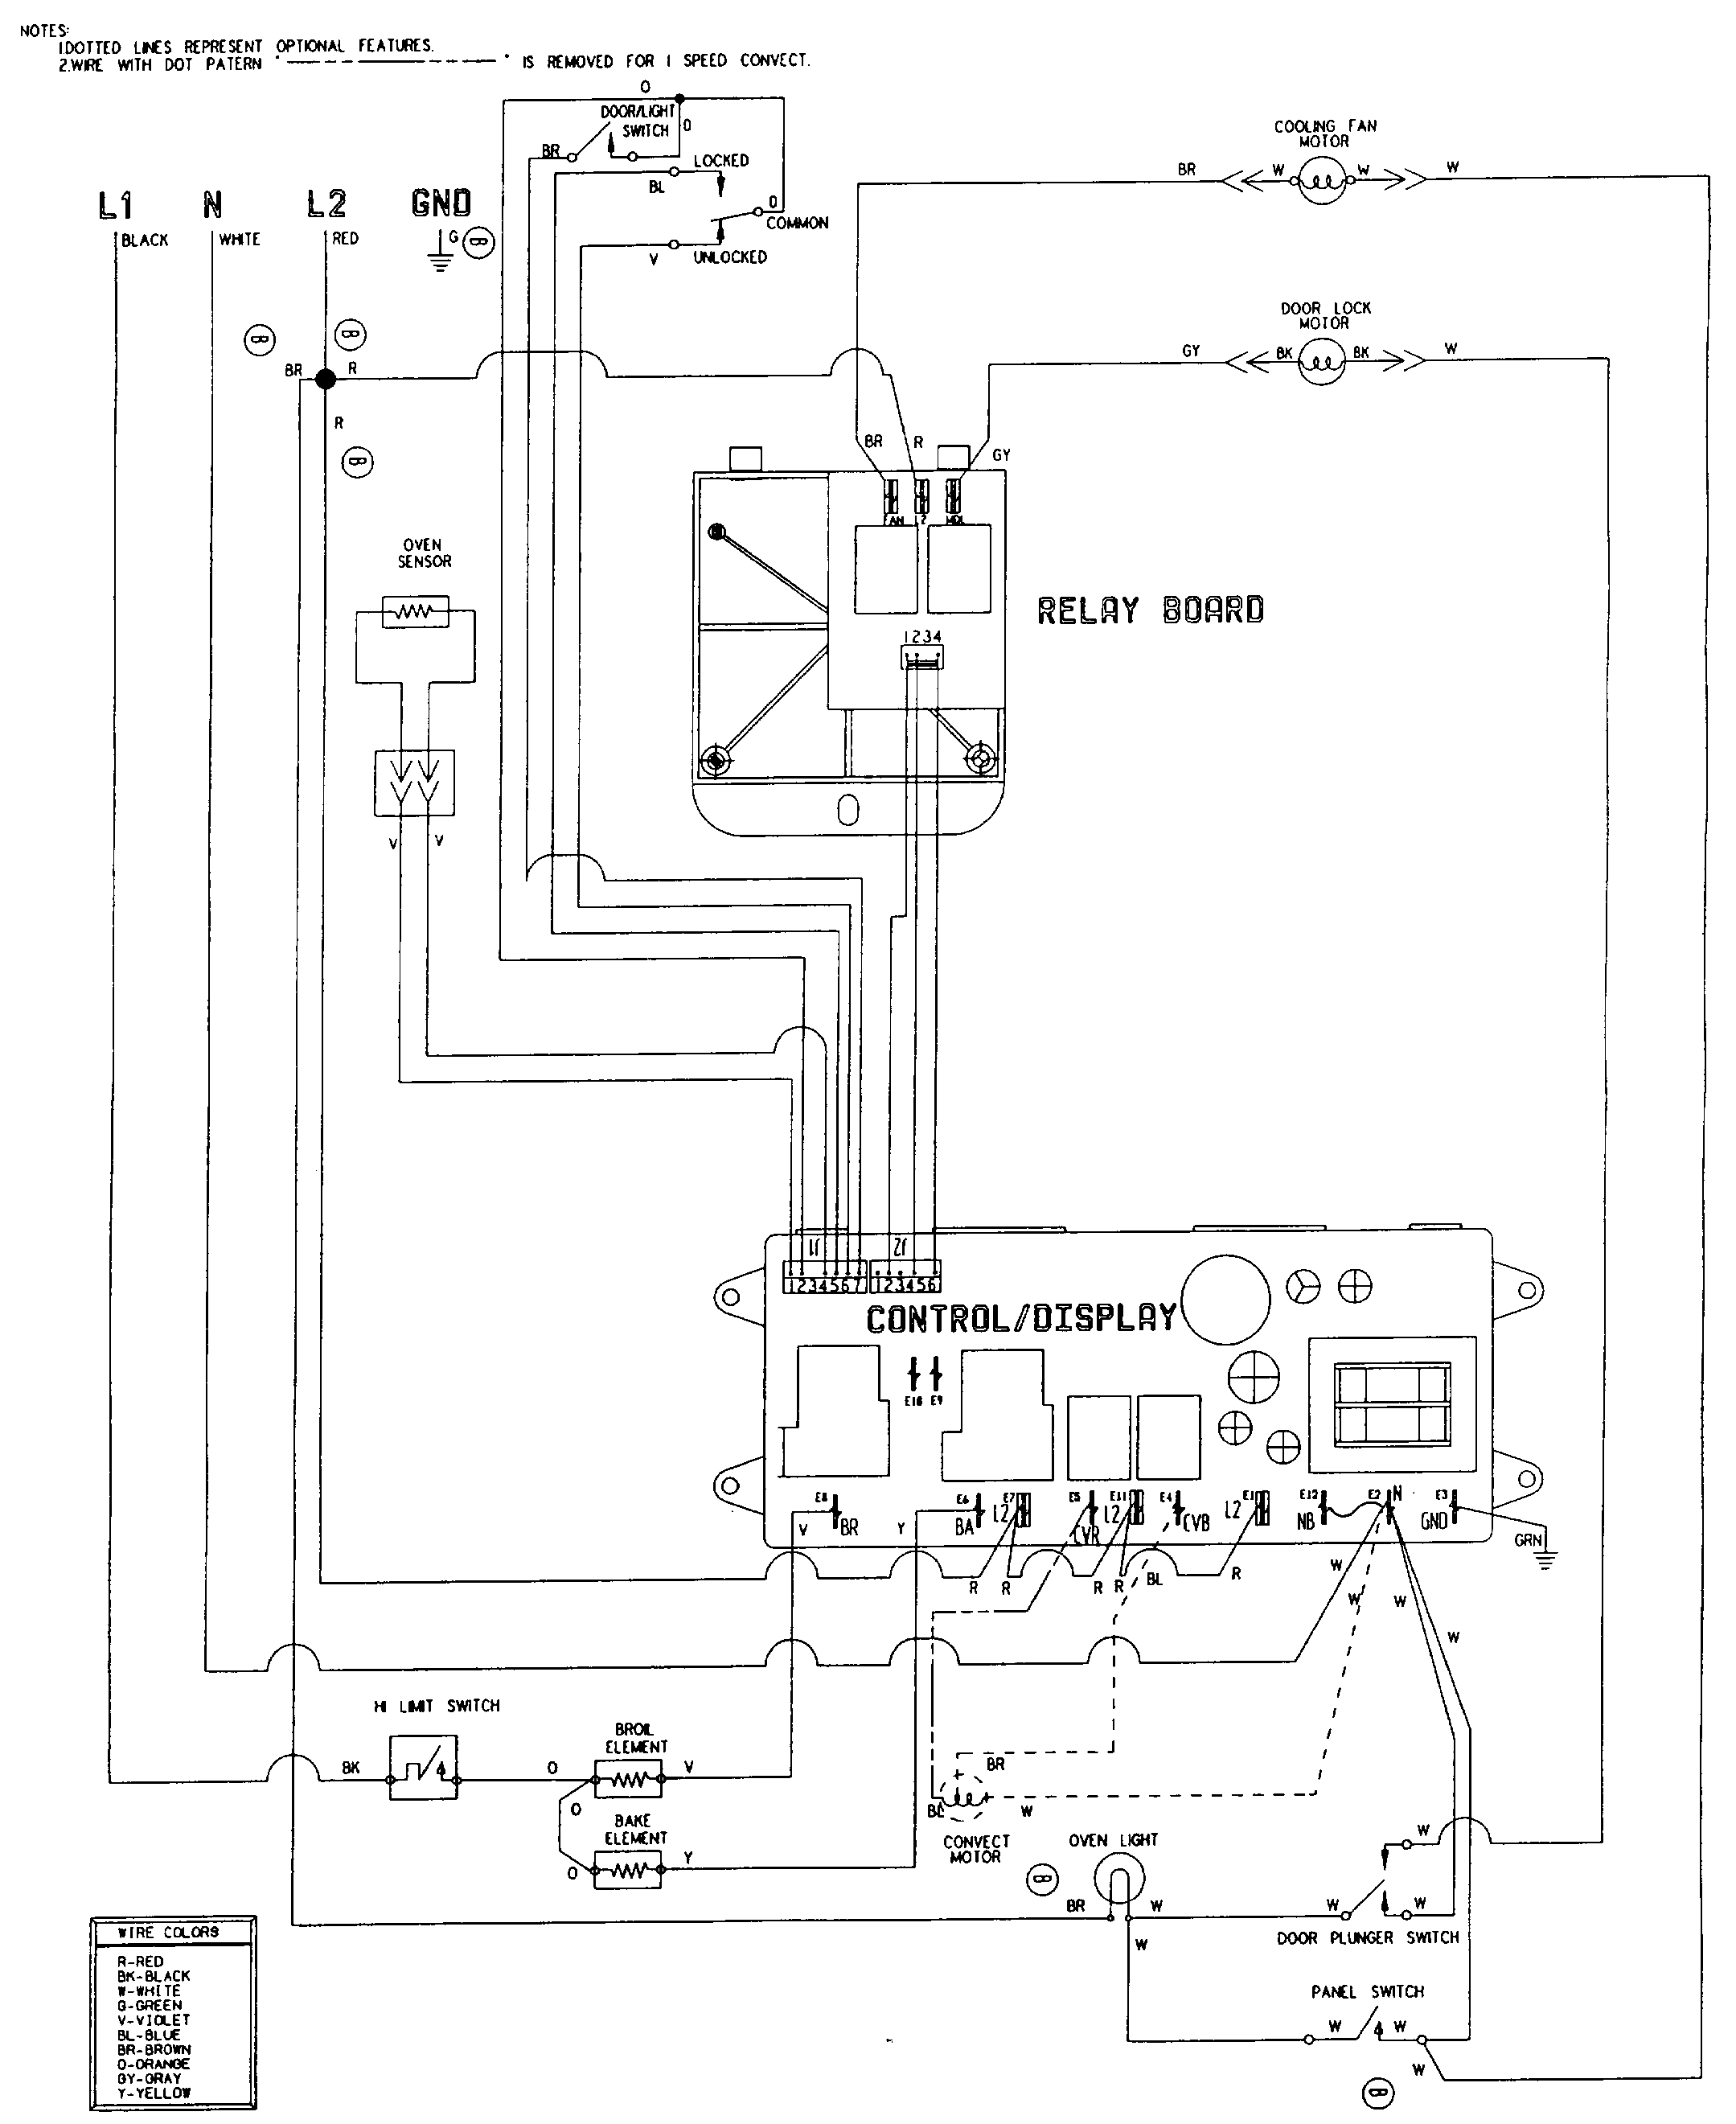 DIAGRAM] Robert S Oven Wiring Diagram FULL Version HD Quality Wiring Diagram  - DIAGRAMNOW.HOSTERIA87.IT | Defy Stove Wiring Diagram |  | Hosteria 87